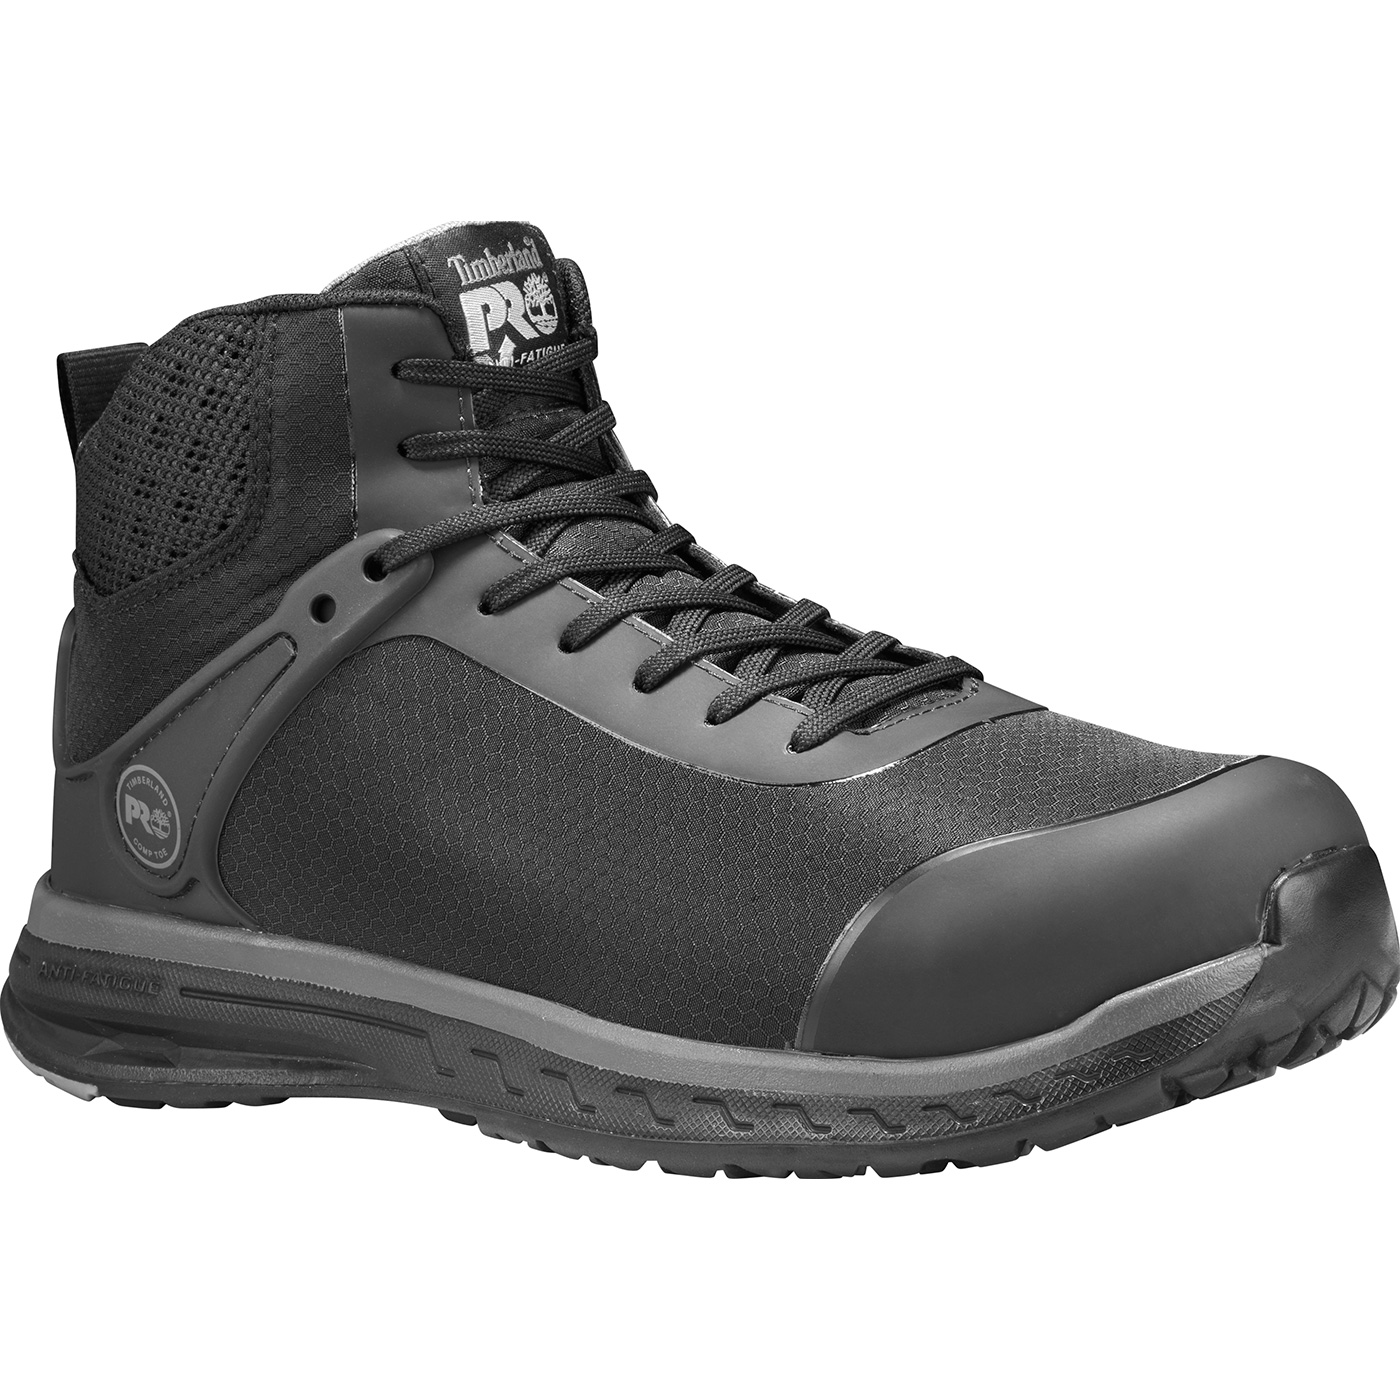 47da514ba Timberland PRO Drivetrain Mid Men s Composite Toe Static-Dissipative  Athletic Work ShoeTimberland PRO Drivetrain Mid Men s Composite Toe  Static-Dissipative ...